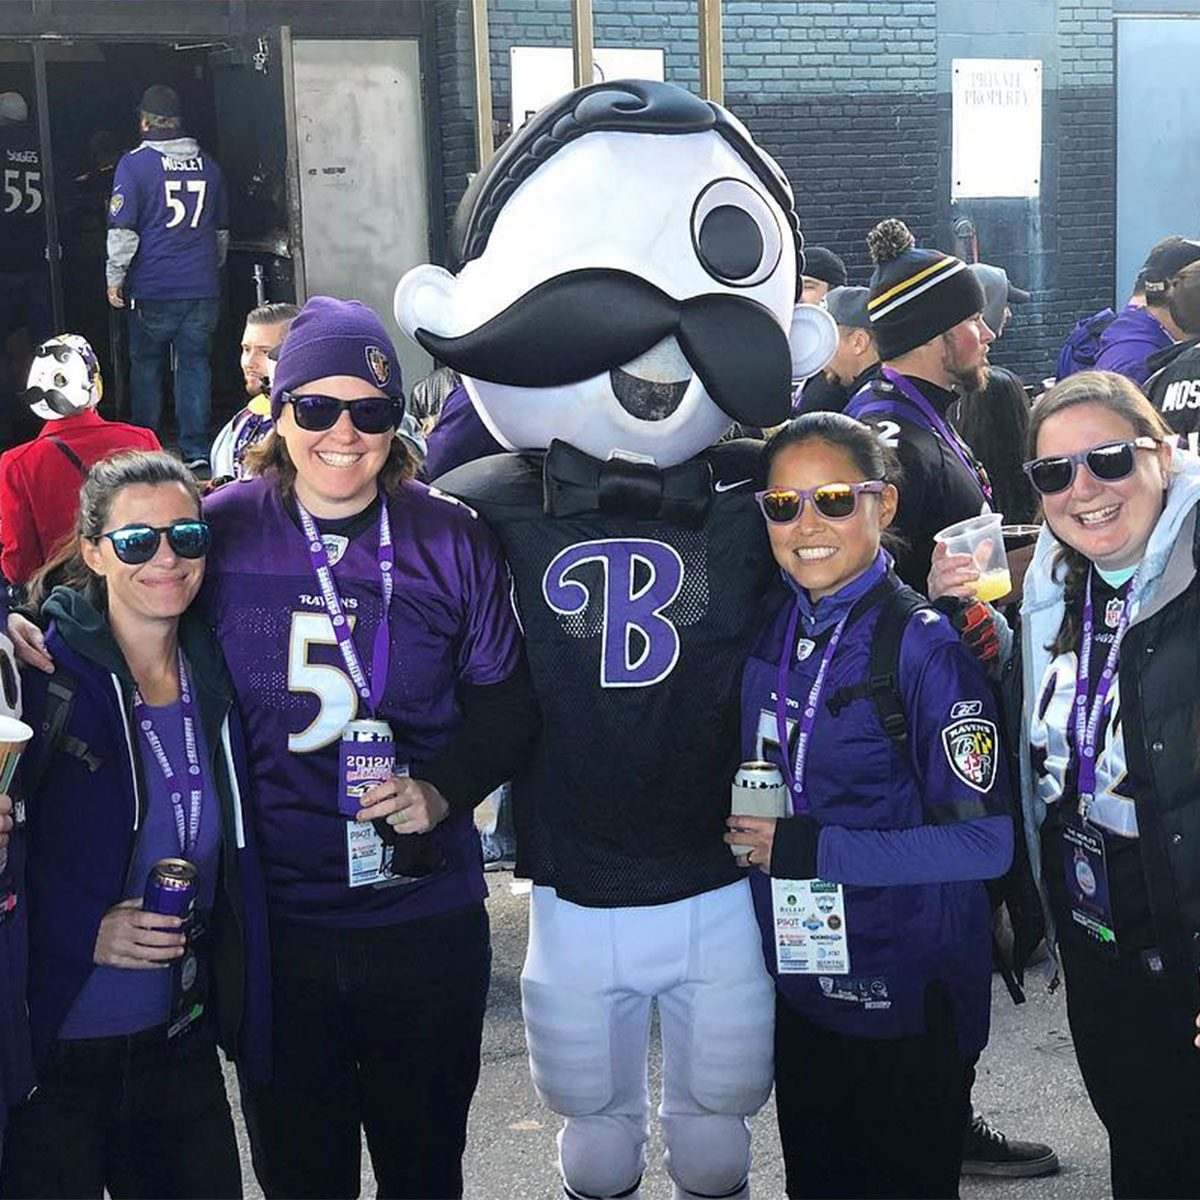 Baltimore Ravens fans posing with mascot